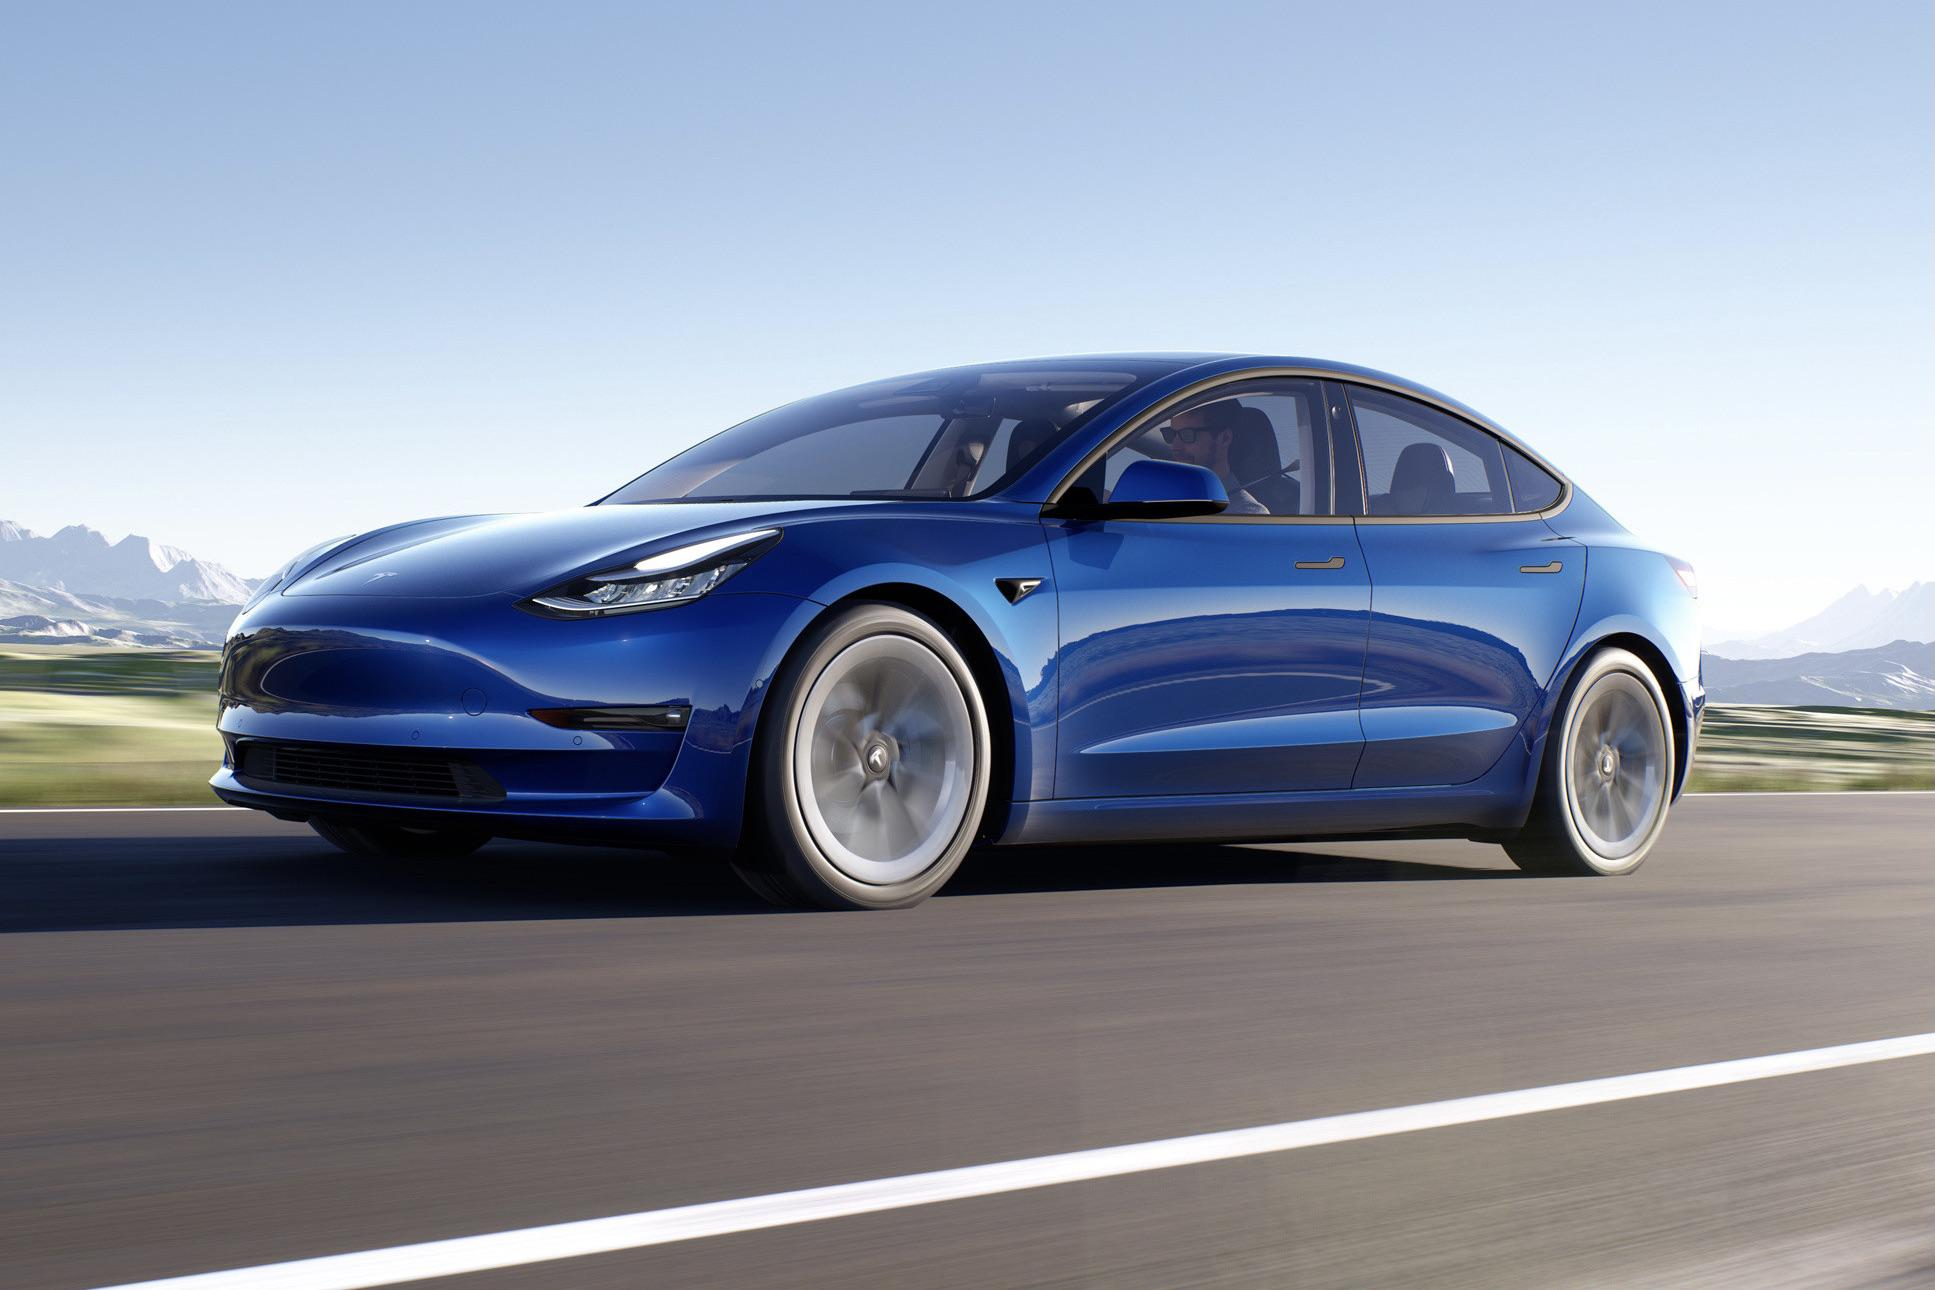 Why a Tesla Model 3 is the best affordable electric car